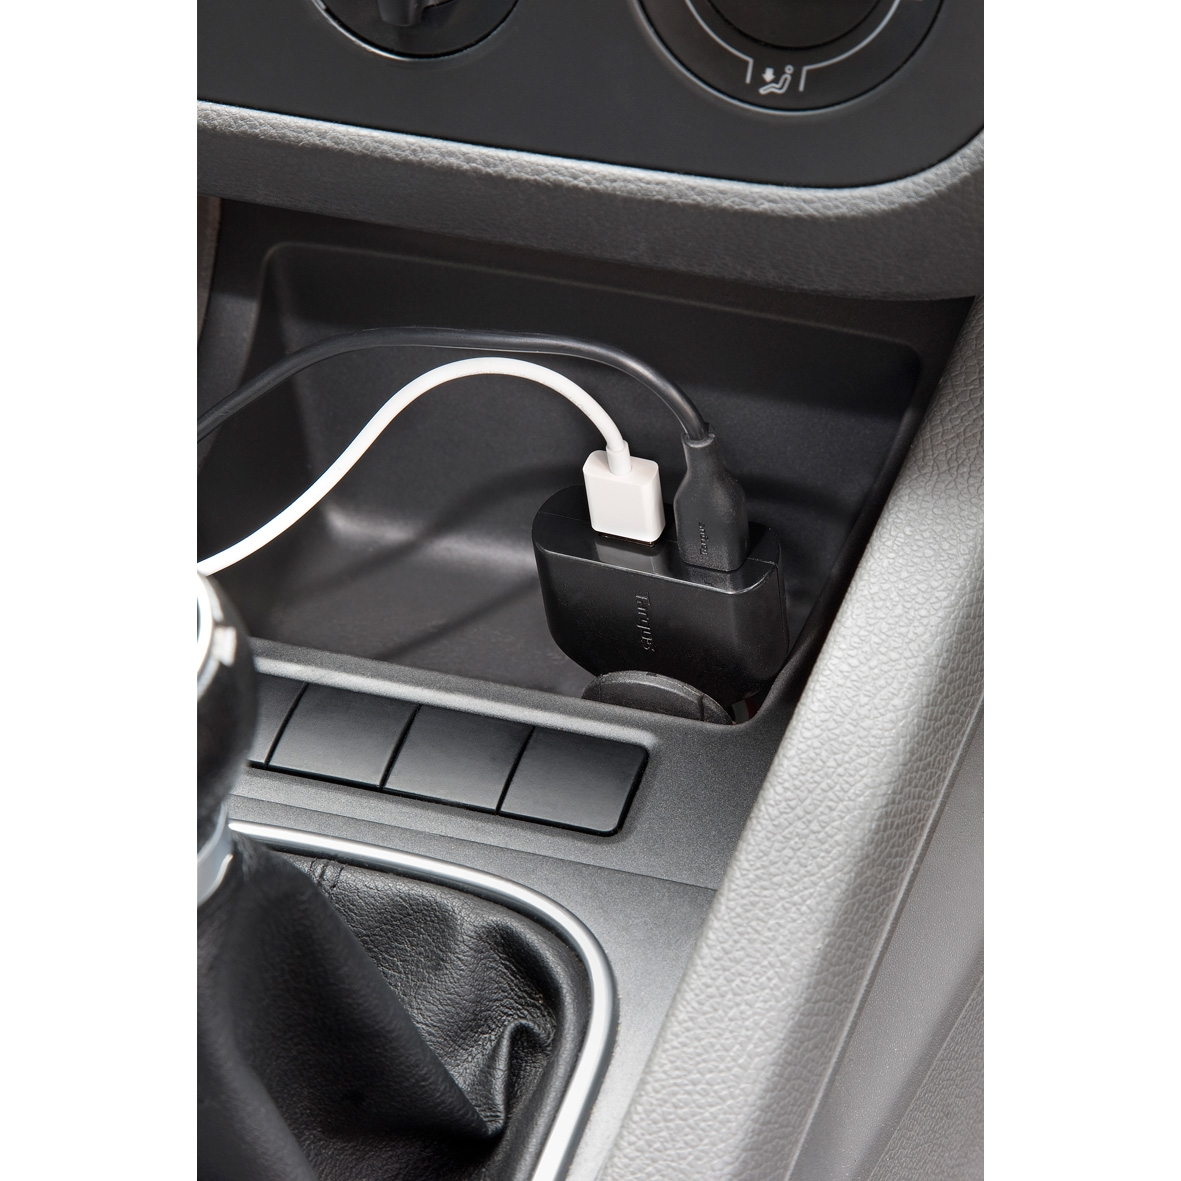 Picture of Targus Laptop Car Charger + Phone/Tablet Charge